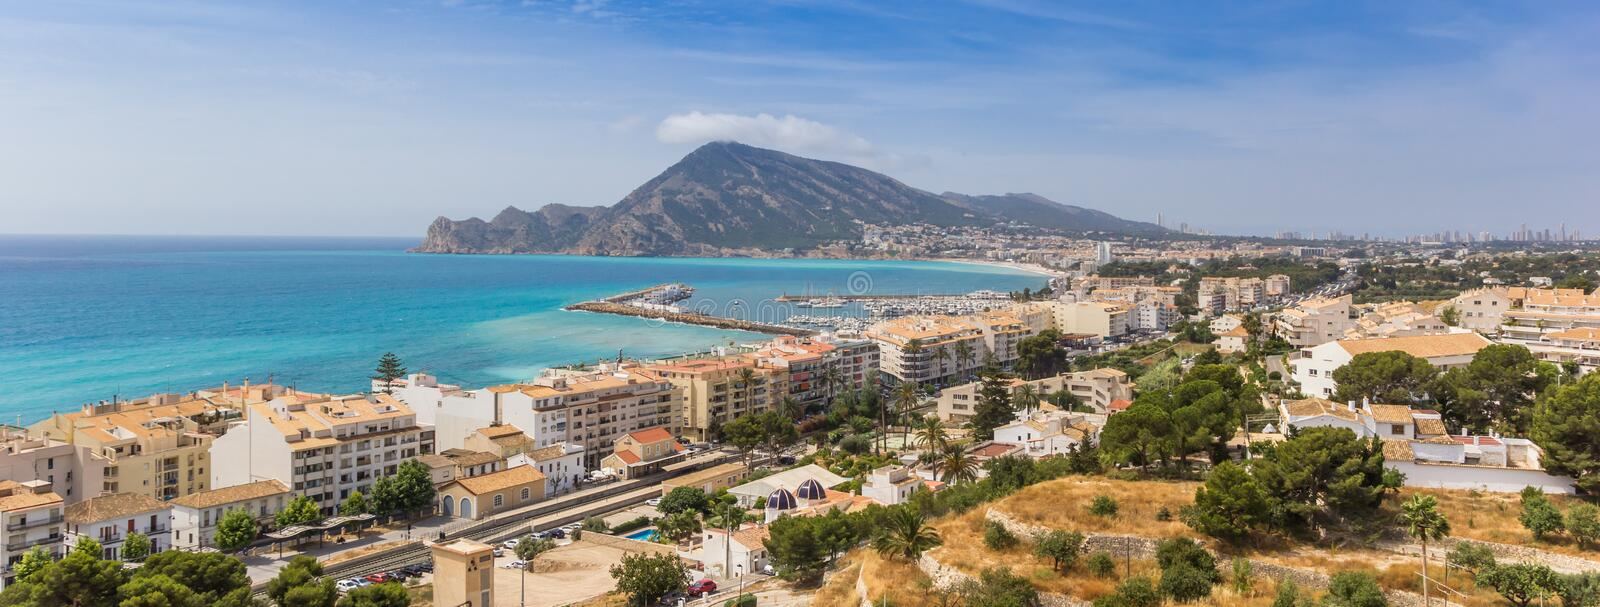 Panorama of the Costa Blanca from the overlook point in Altea. Spain royalty free stock photos